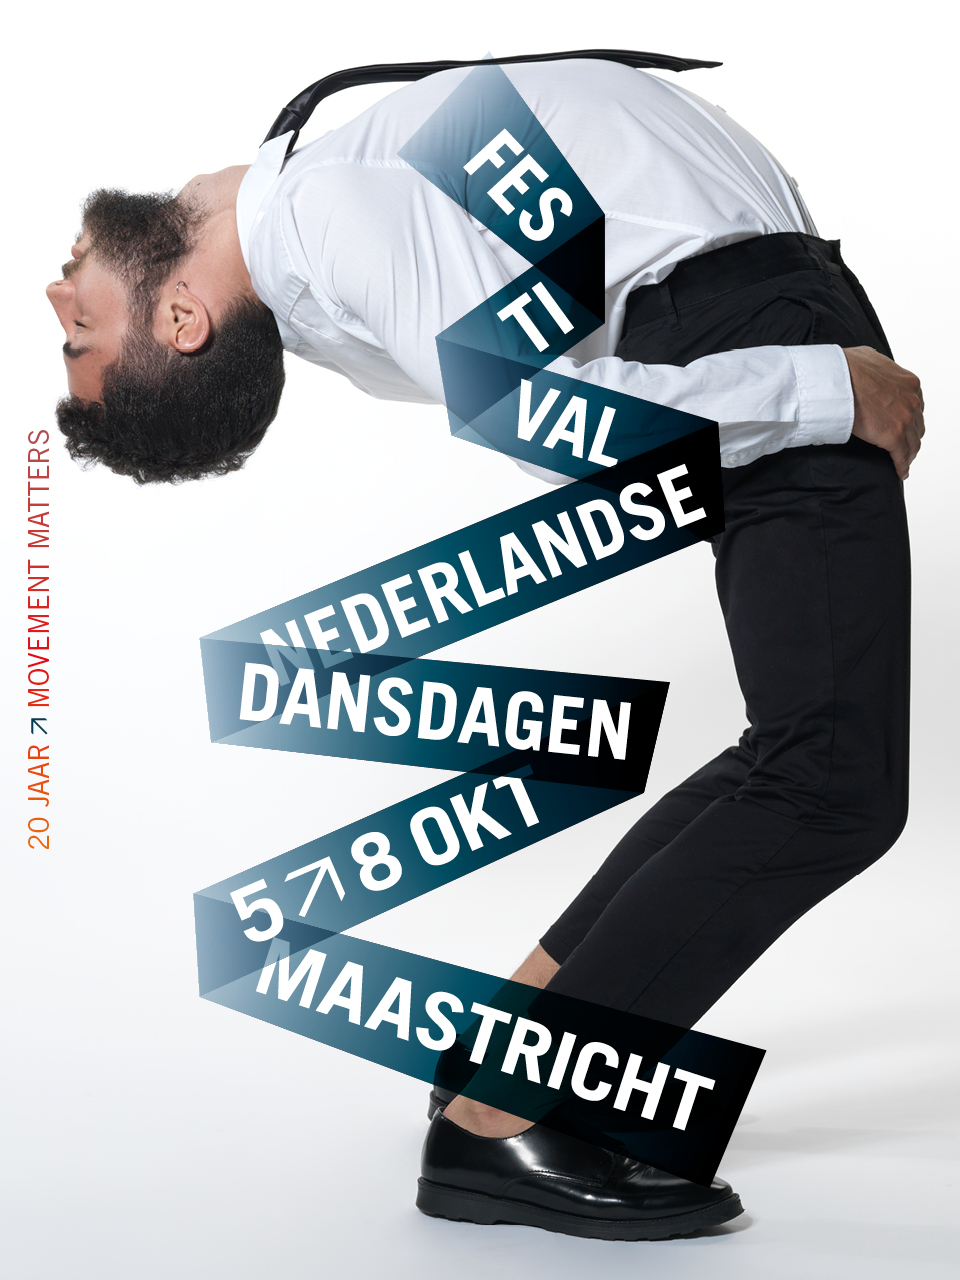 NDD2017_website_campagnebeeld_2017_480x640px